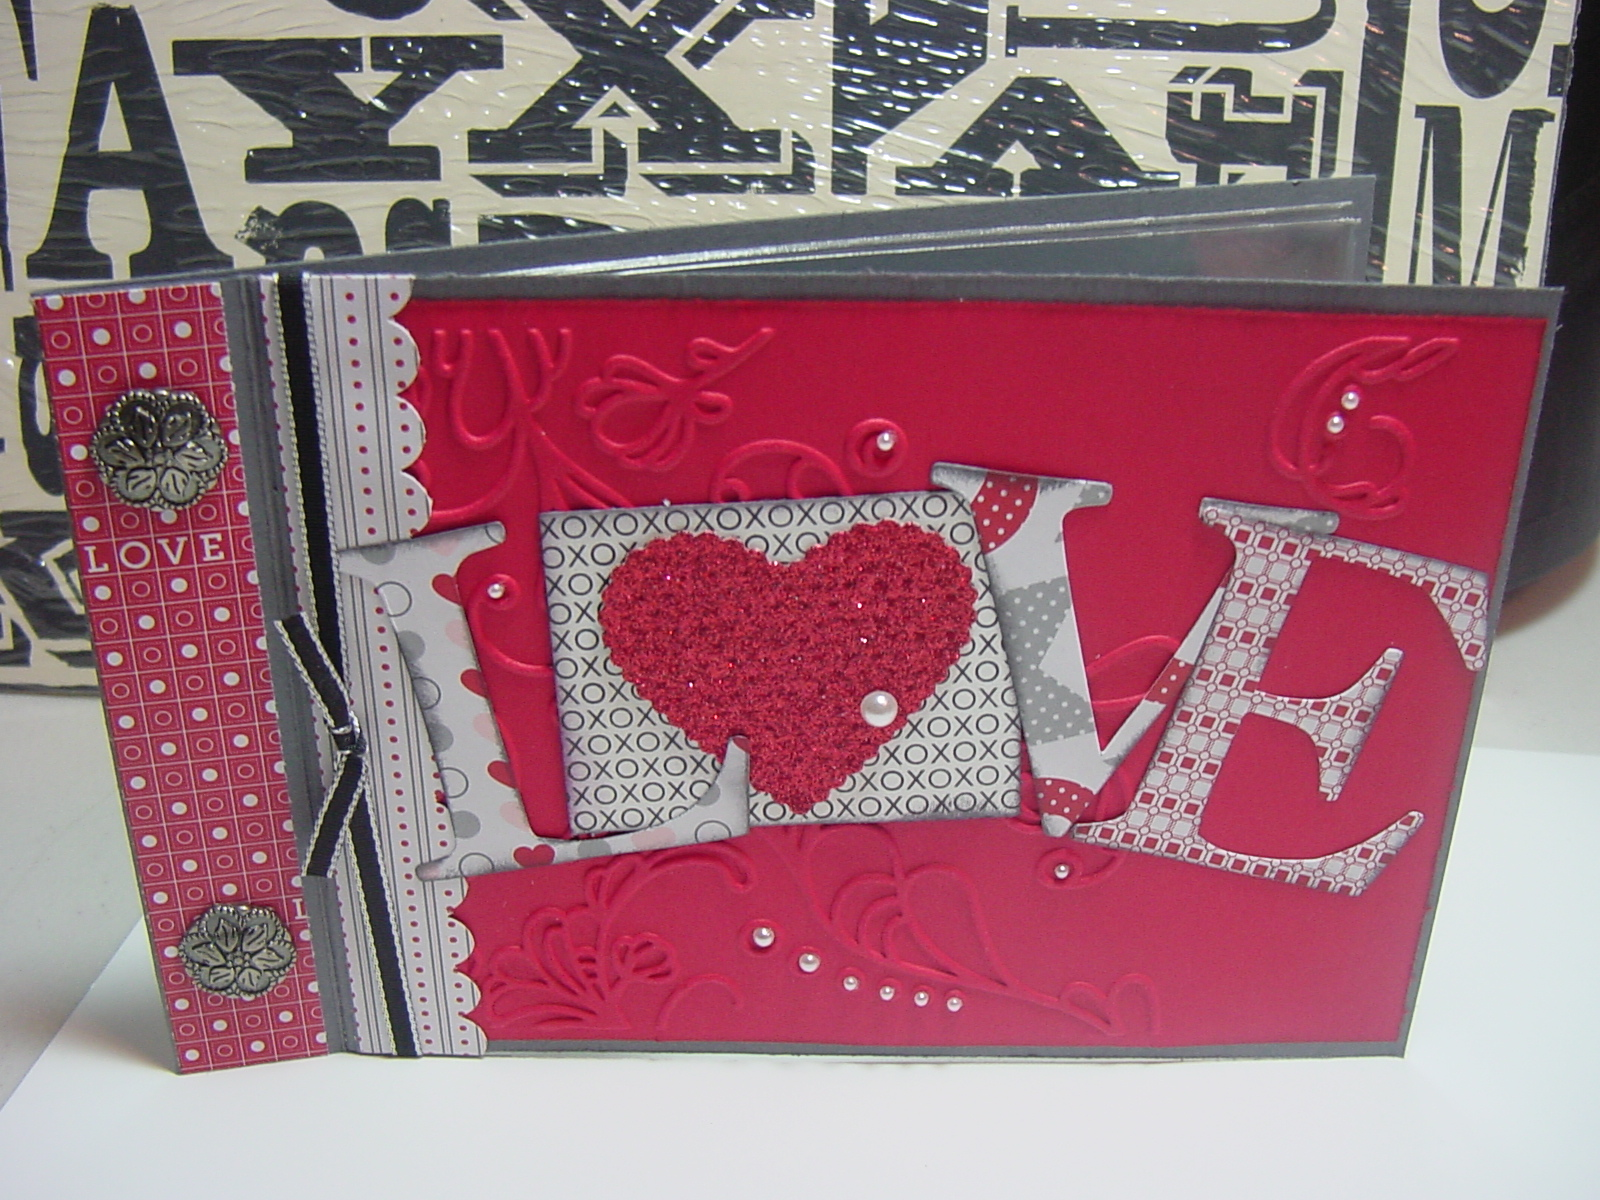 How to make scrapbook easy - Love This Simple Scrapbook Which Is Great For A Best Friend Or A Boyfriend Or A Spouse Easy Easy To Make